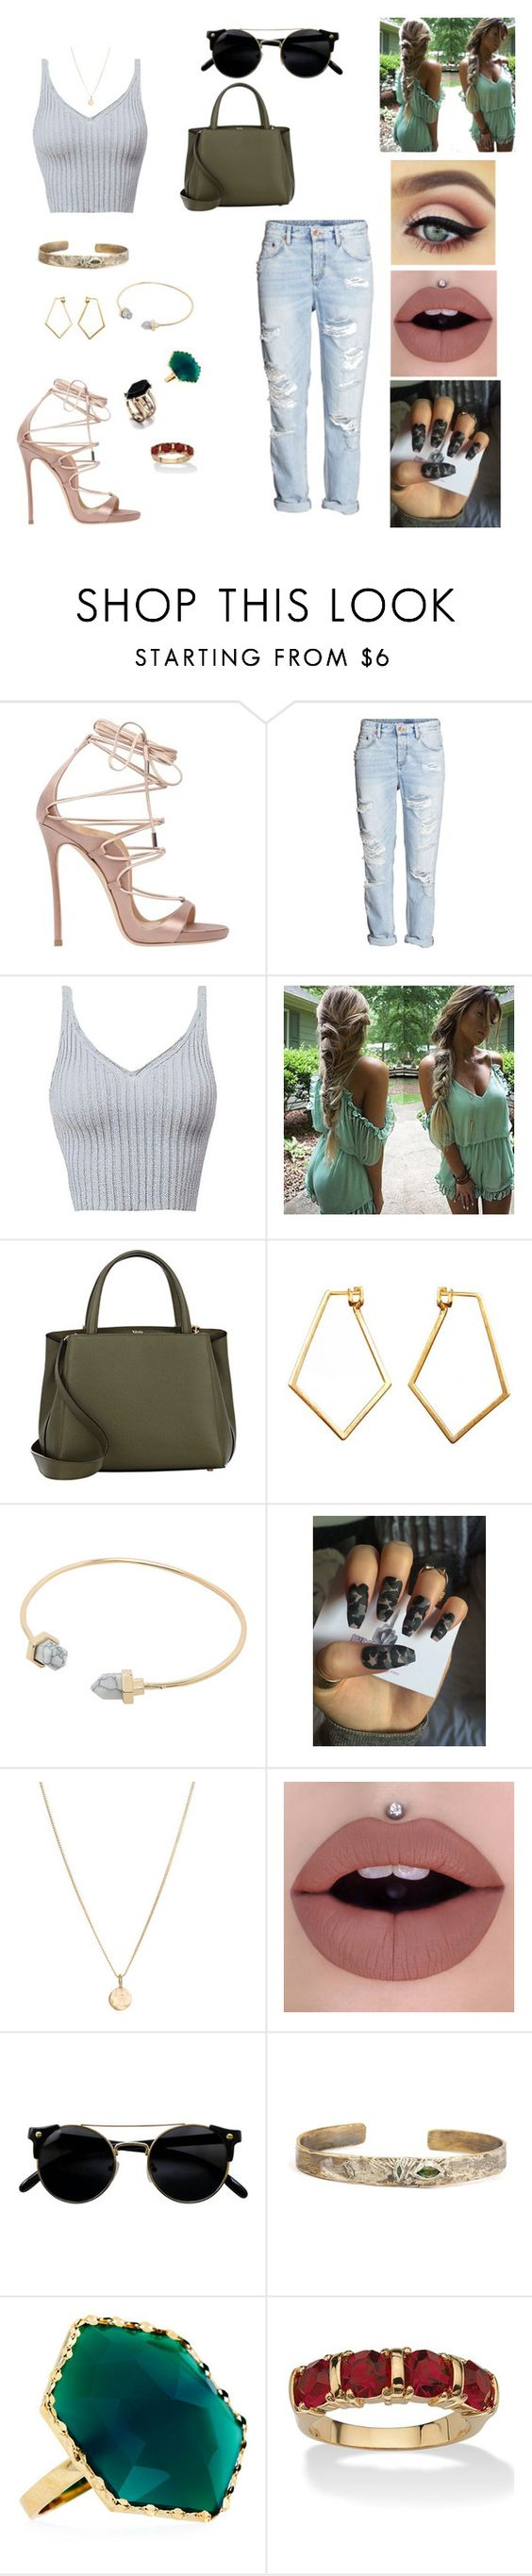 """&"" by raquelitaa-torres ❤ liked on Polyvore featuring Dsquared2, Valextra, Dutch Basics, Laura Lee, Lana and Palm Beach Jewelry"